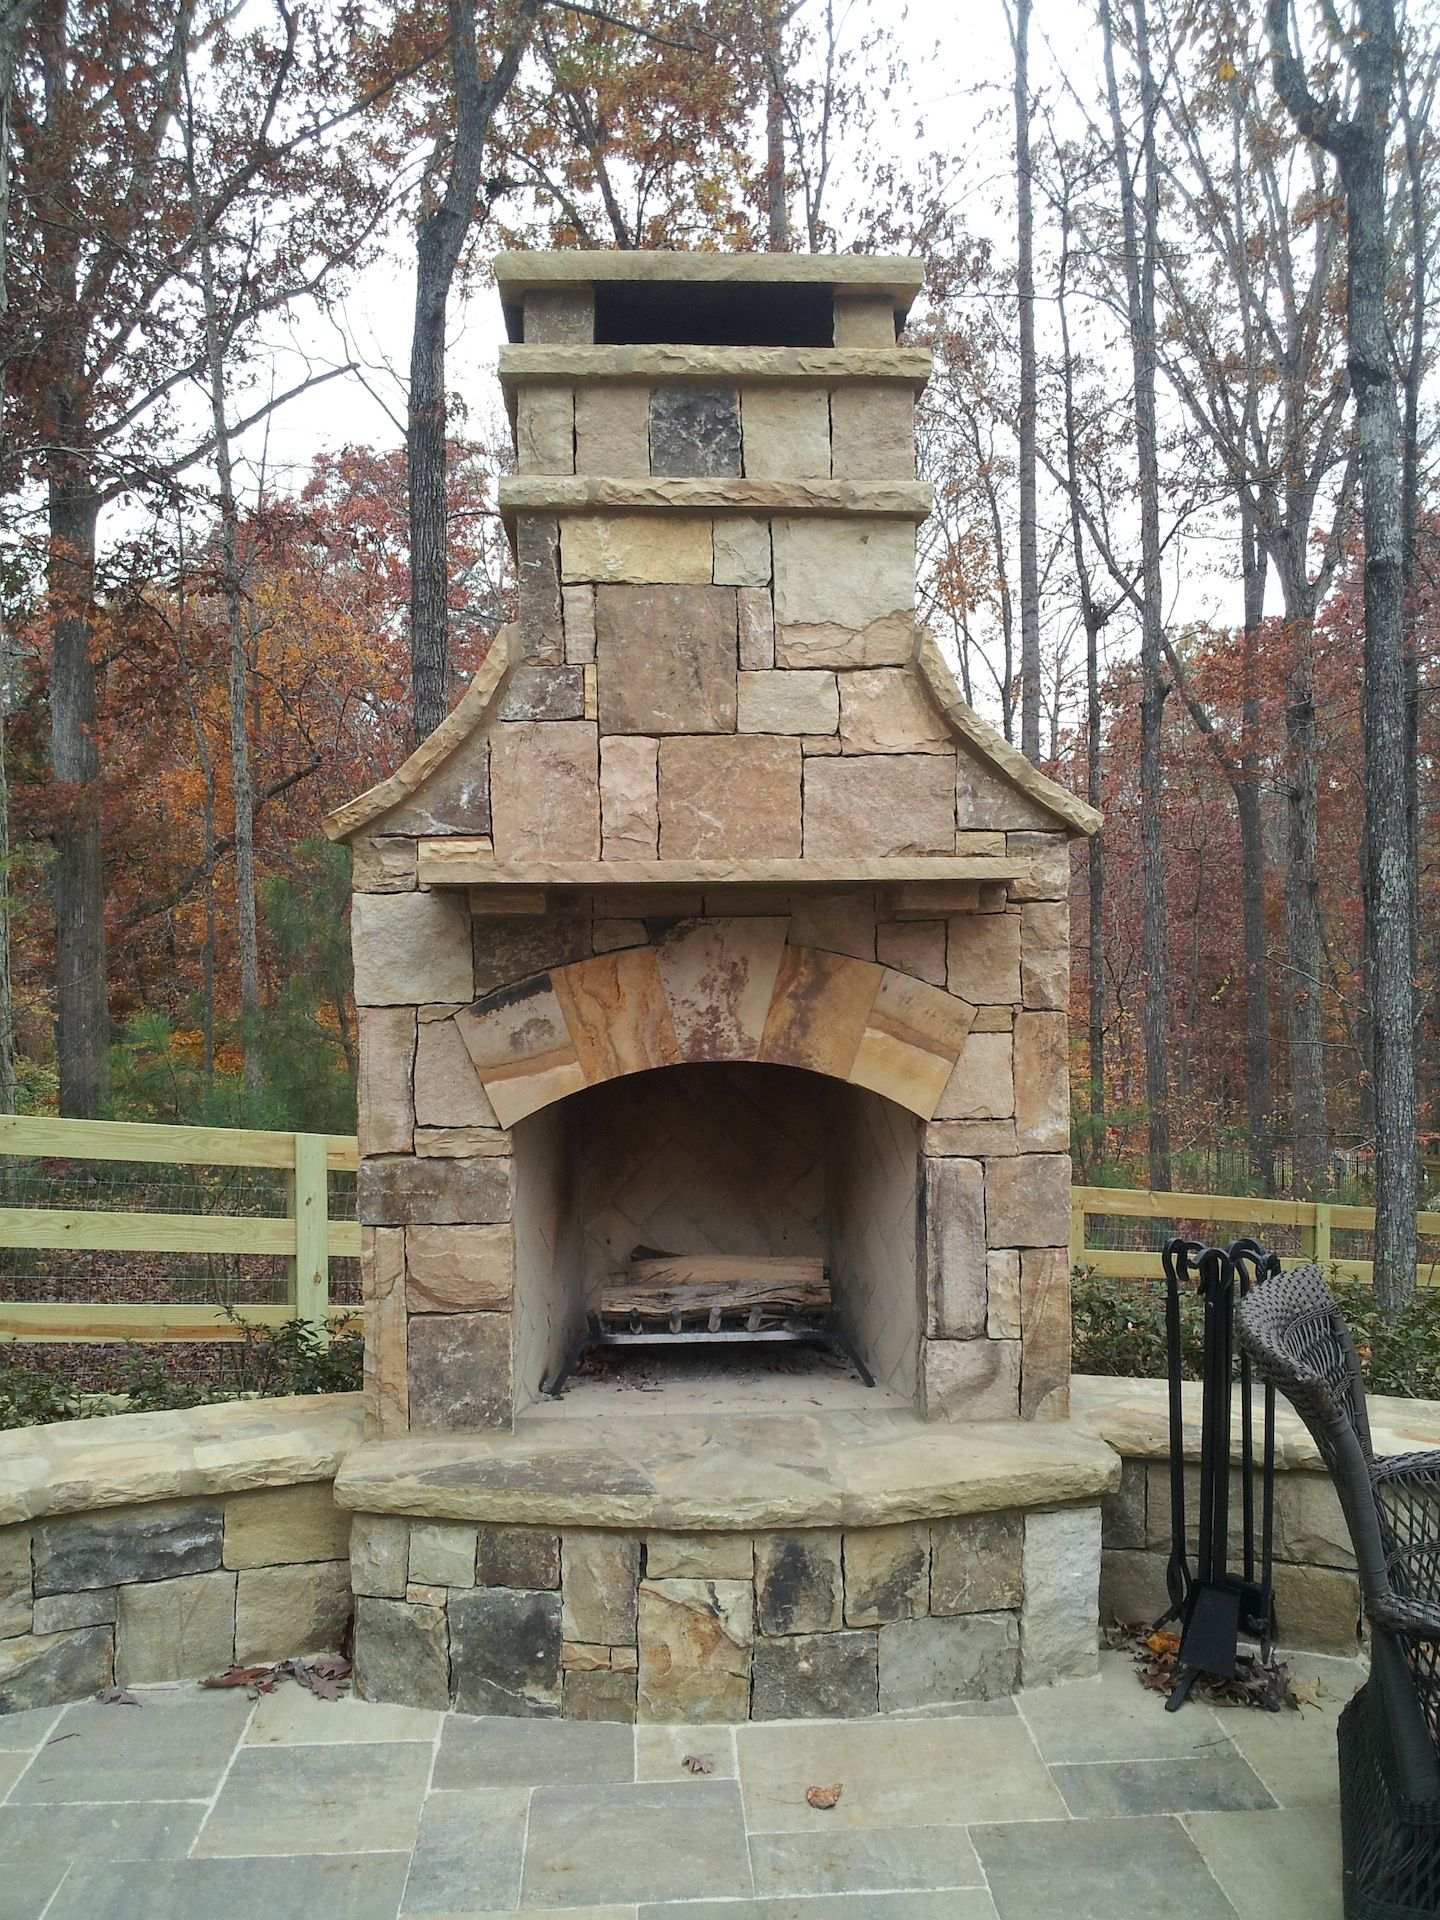 Cheminee Outdoor Outdoor Stone Fireplace With Hearth And Seating Wall